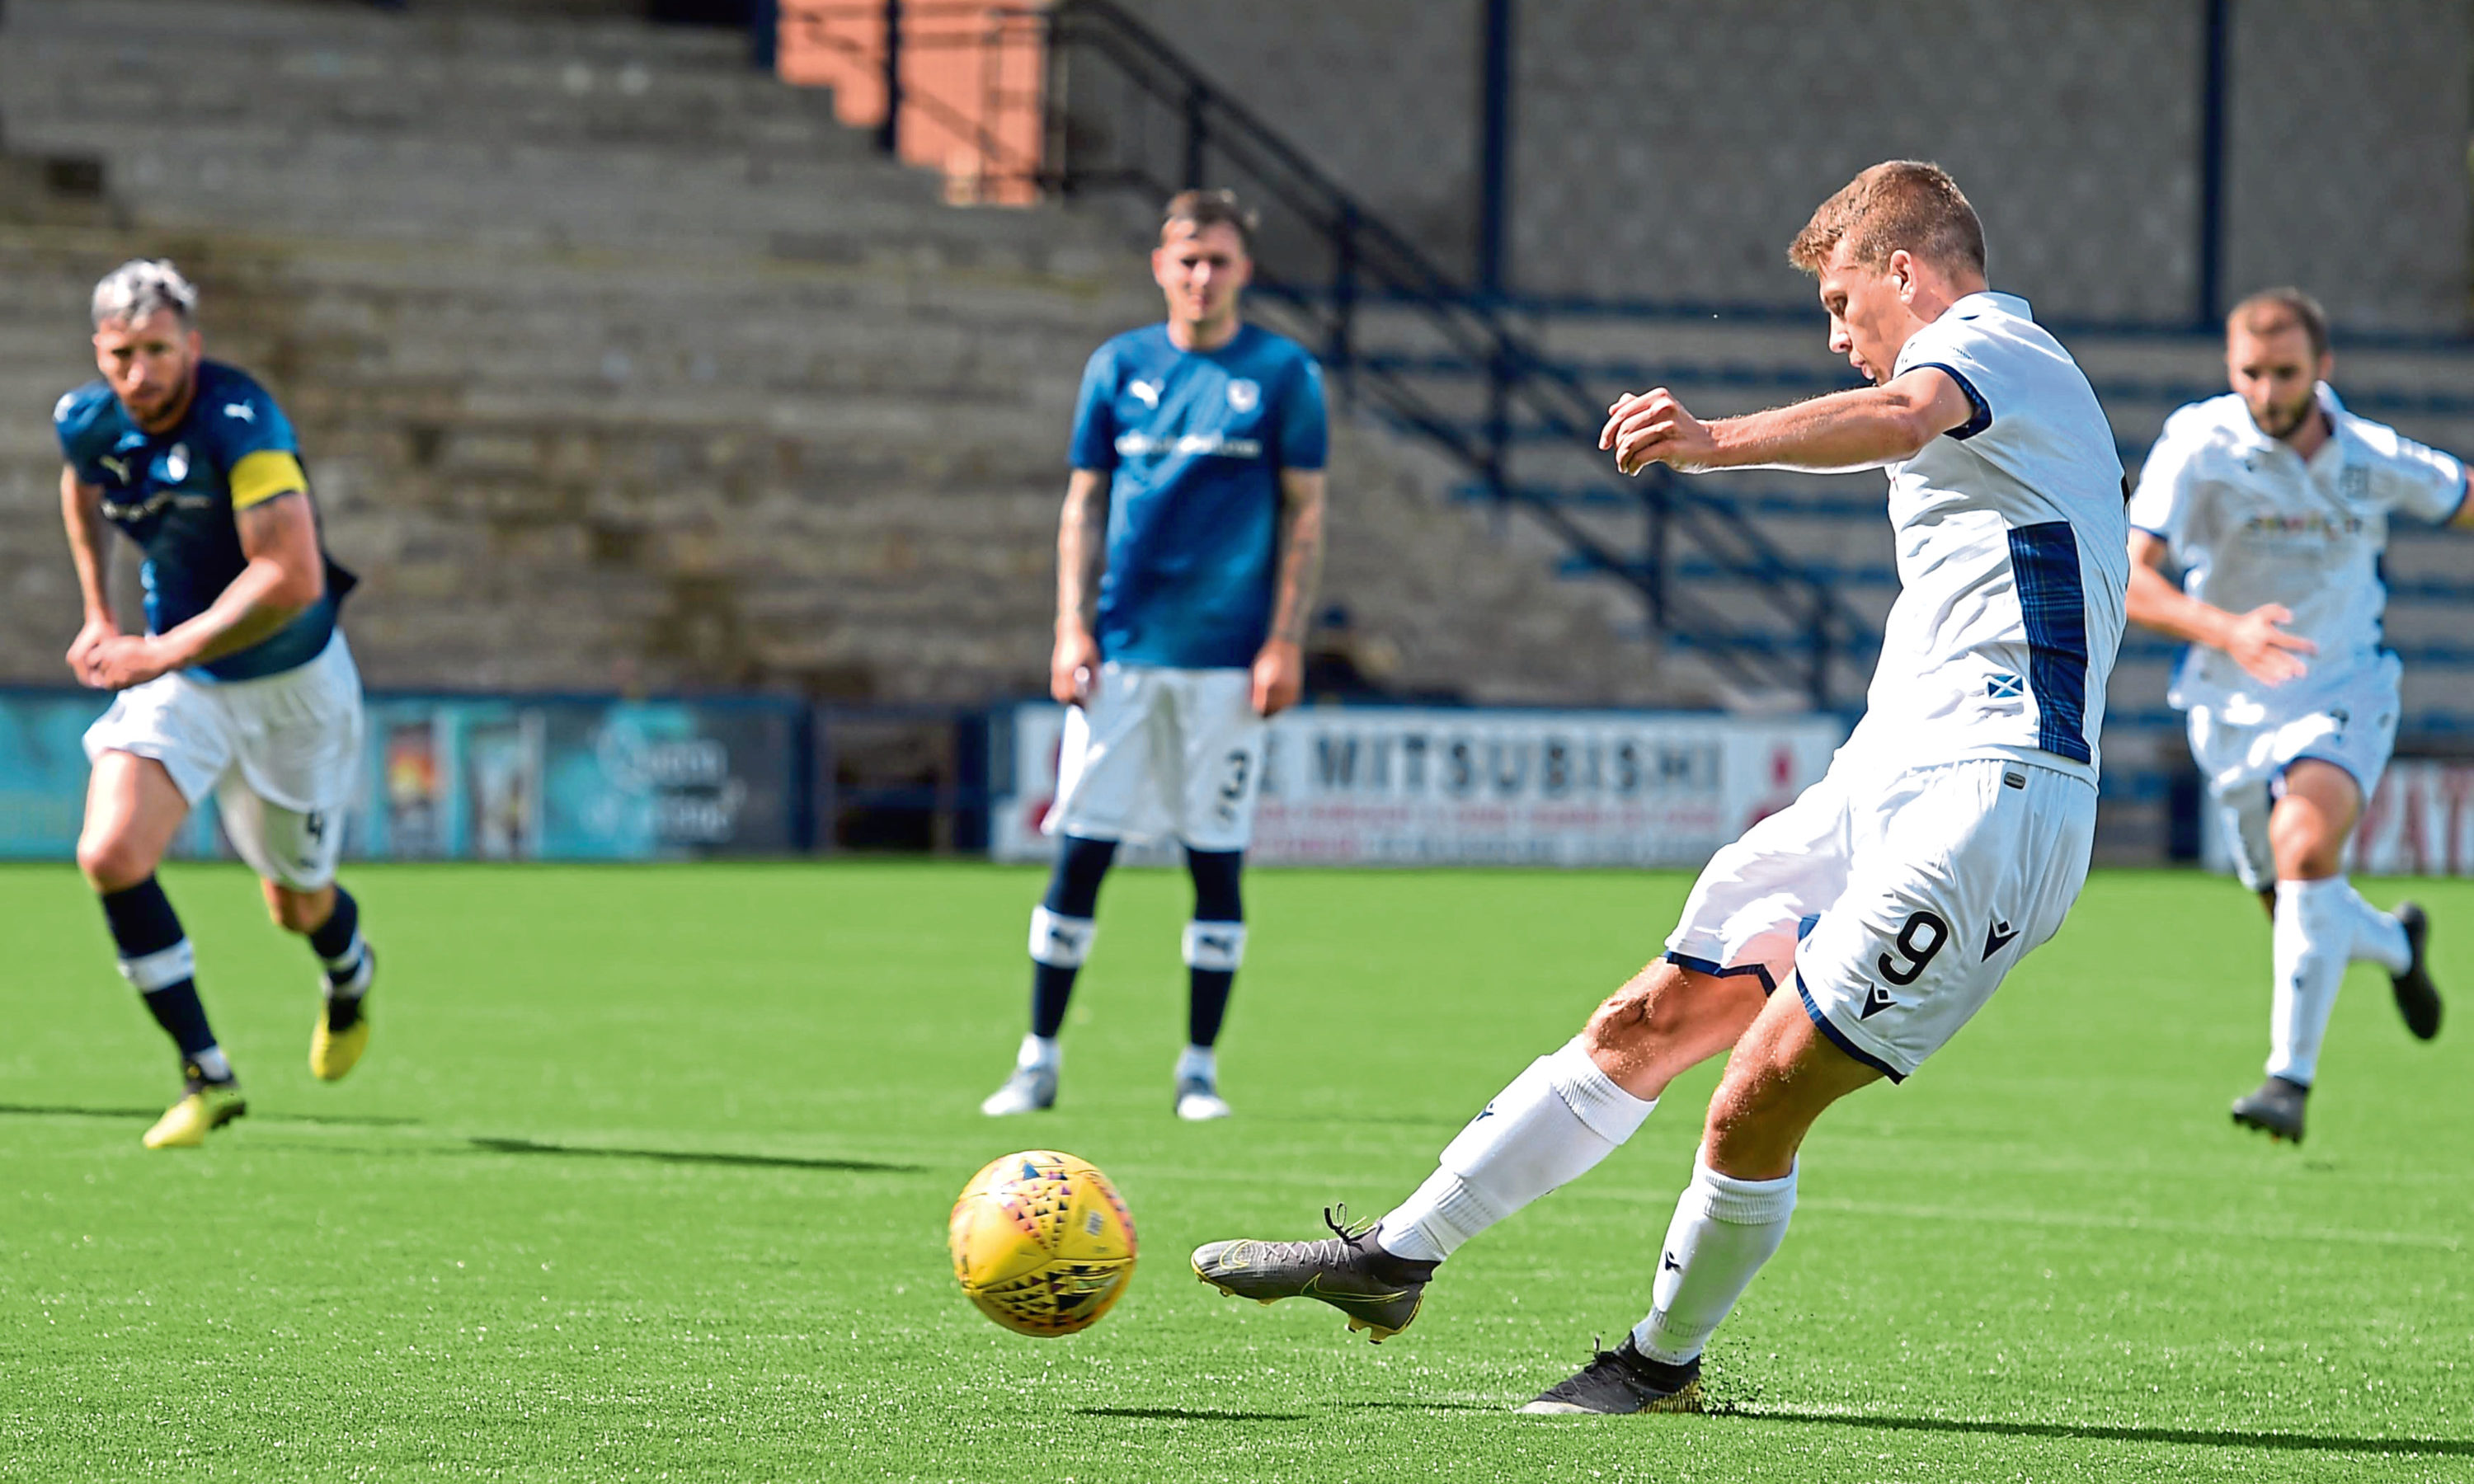 Andrew Nelson converts from the spot to make it 2-0 to Dundee.